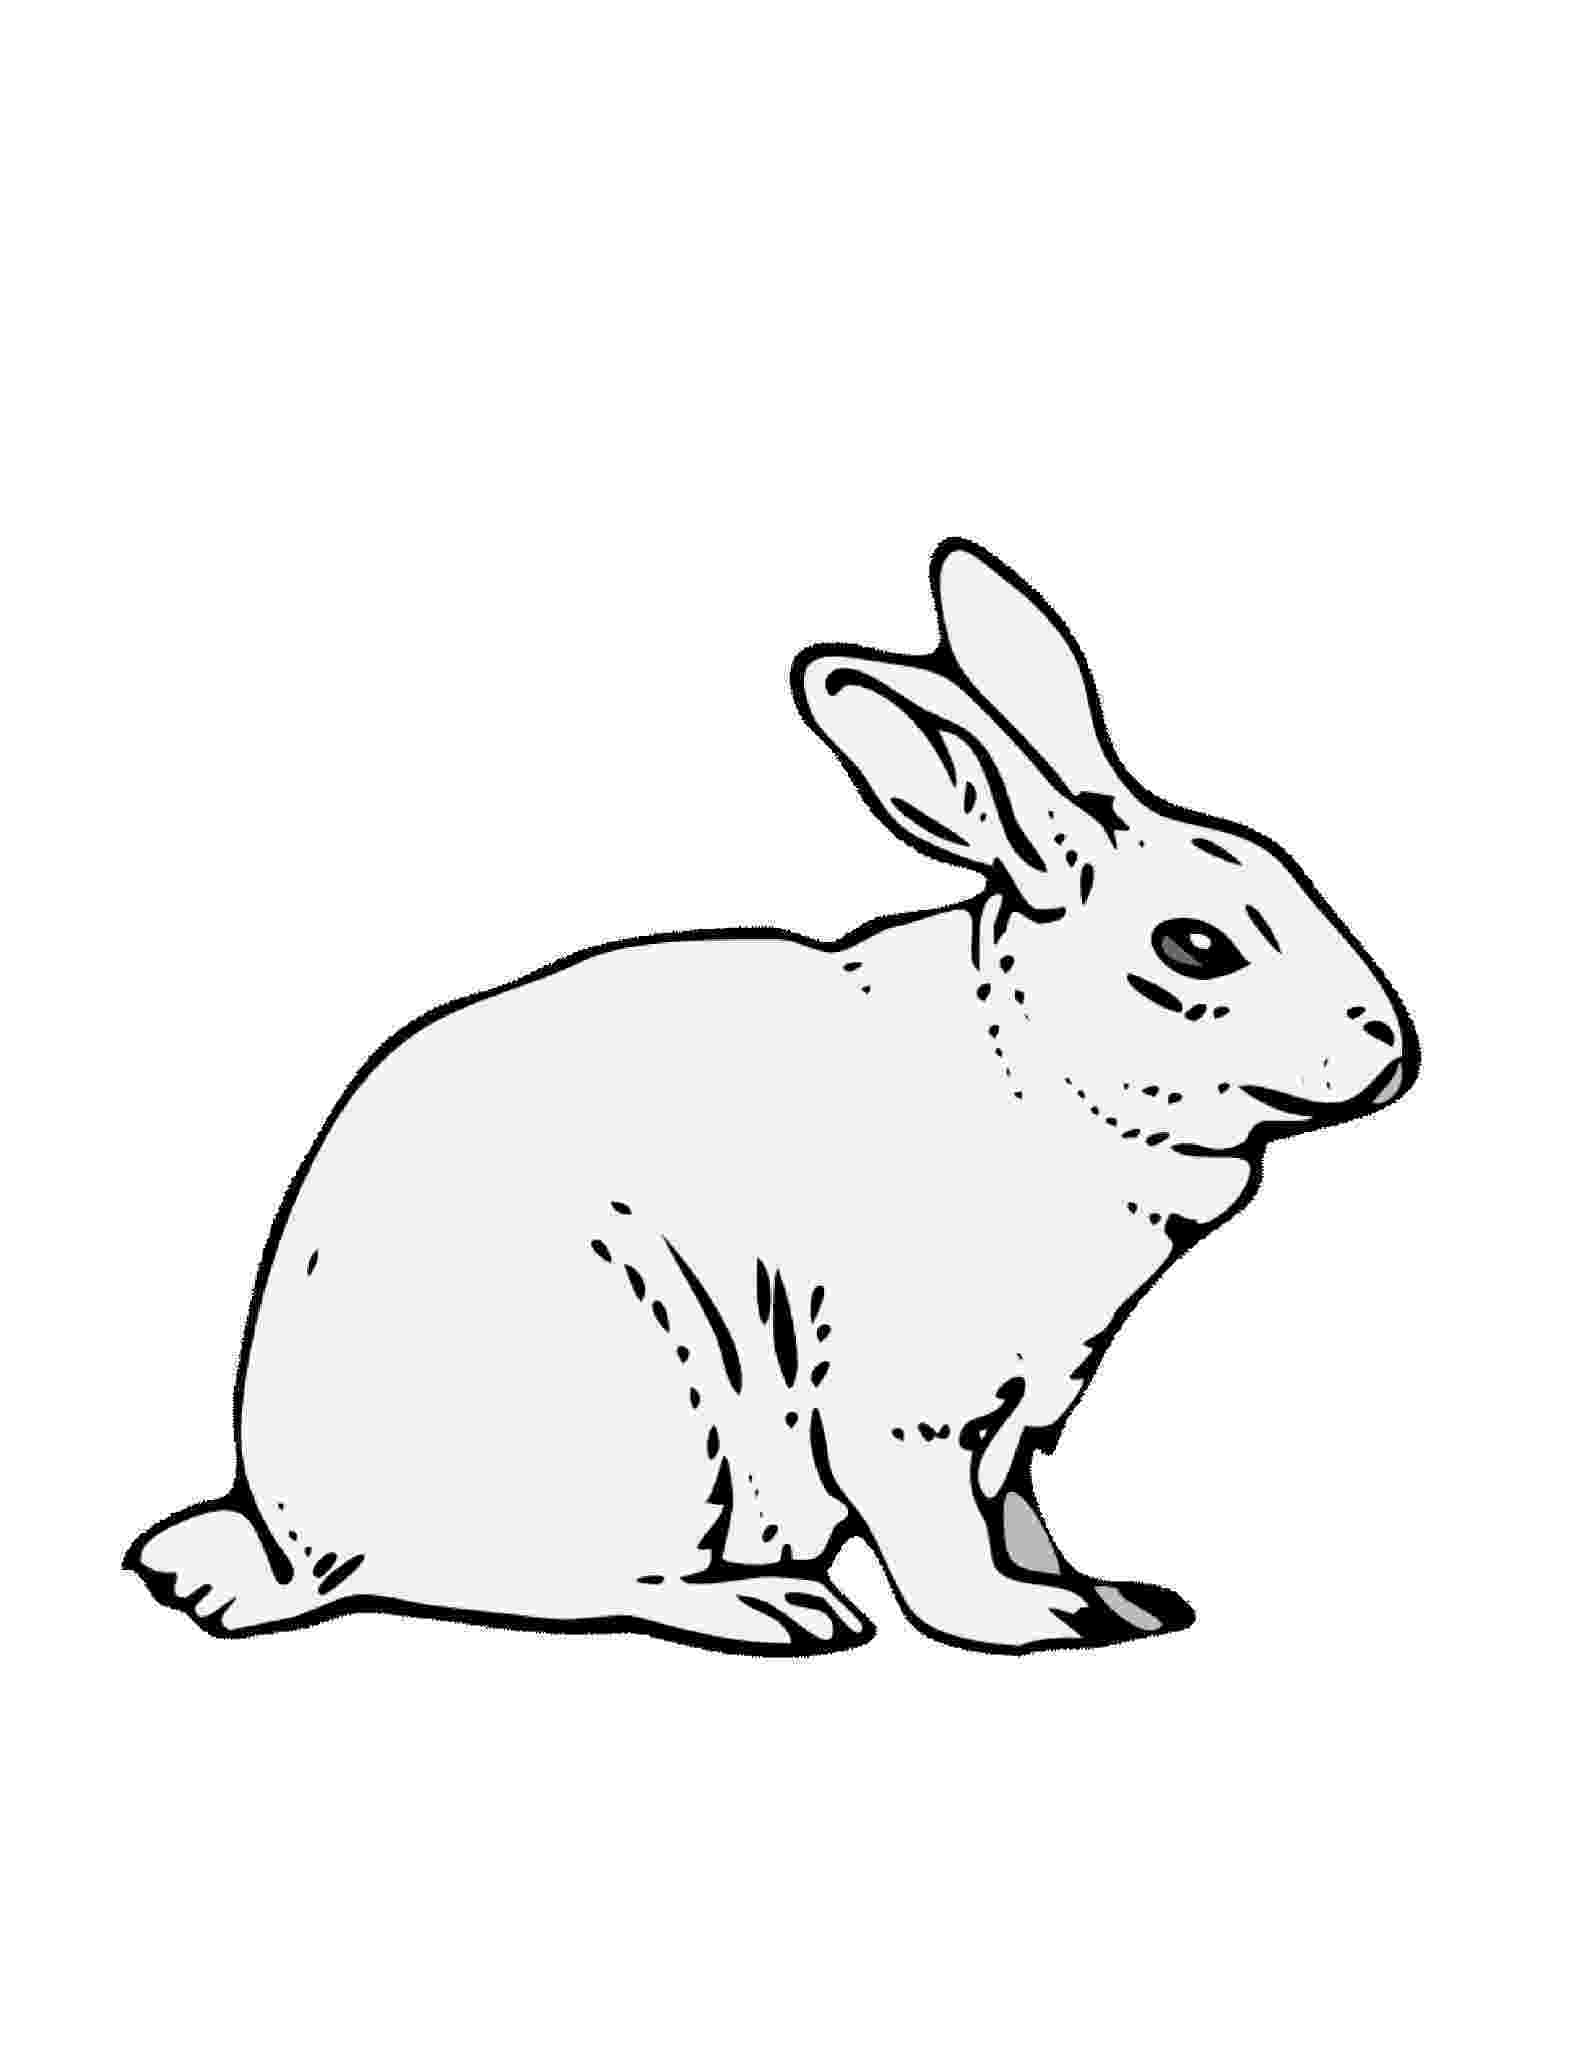 pictures of rabbits for kids quotwhite rabbit39s color bookquot copy 8 rabbits for each child kids rabbits for of pictures